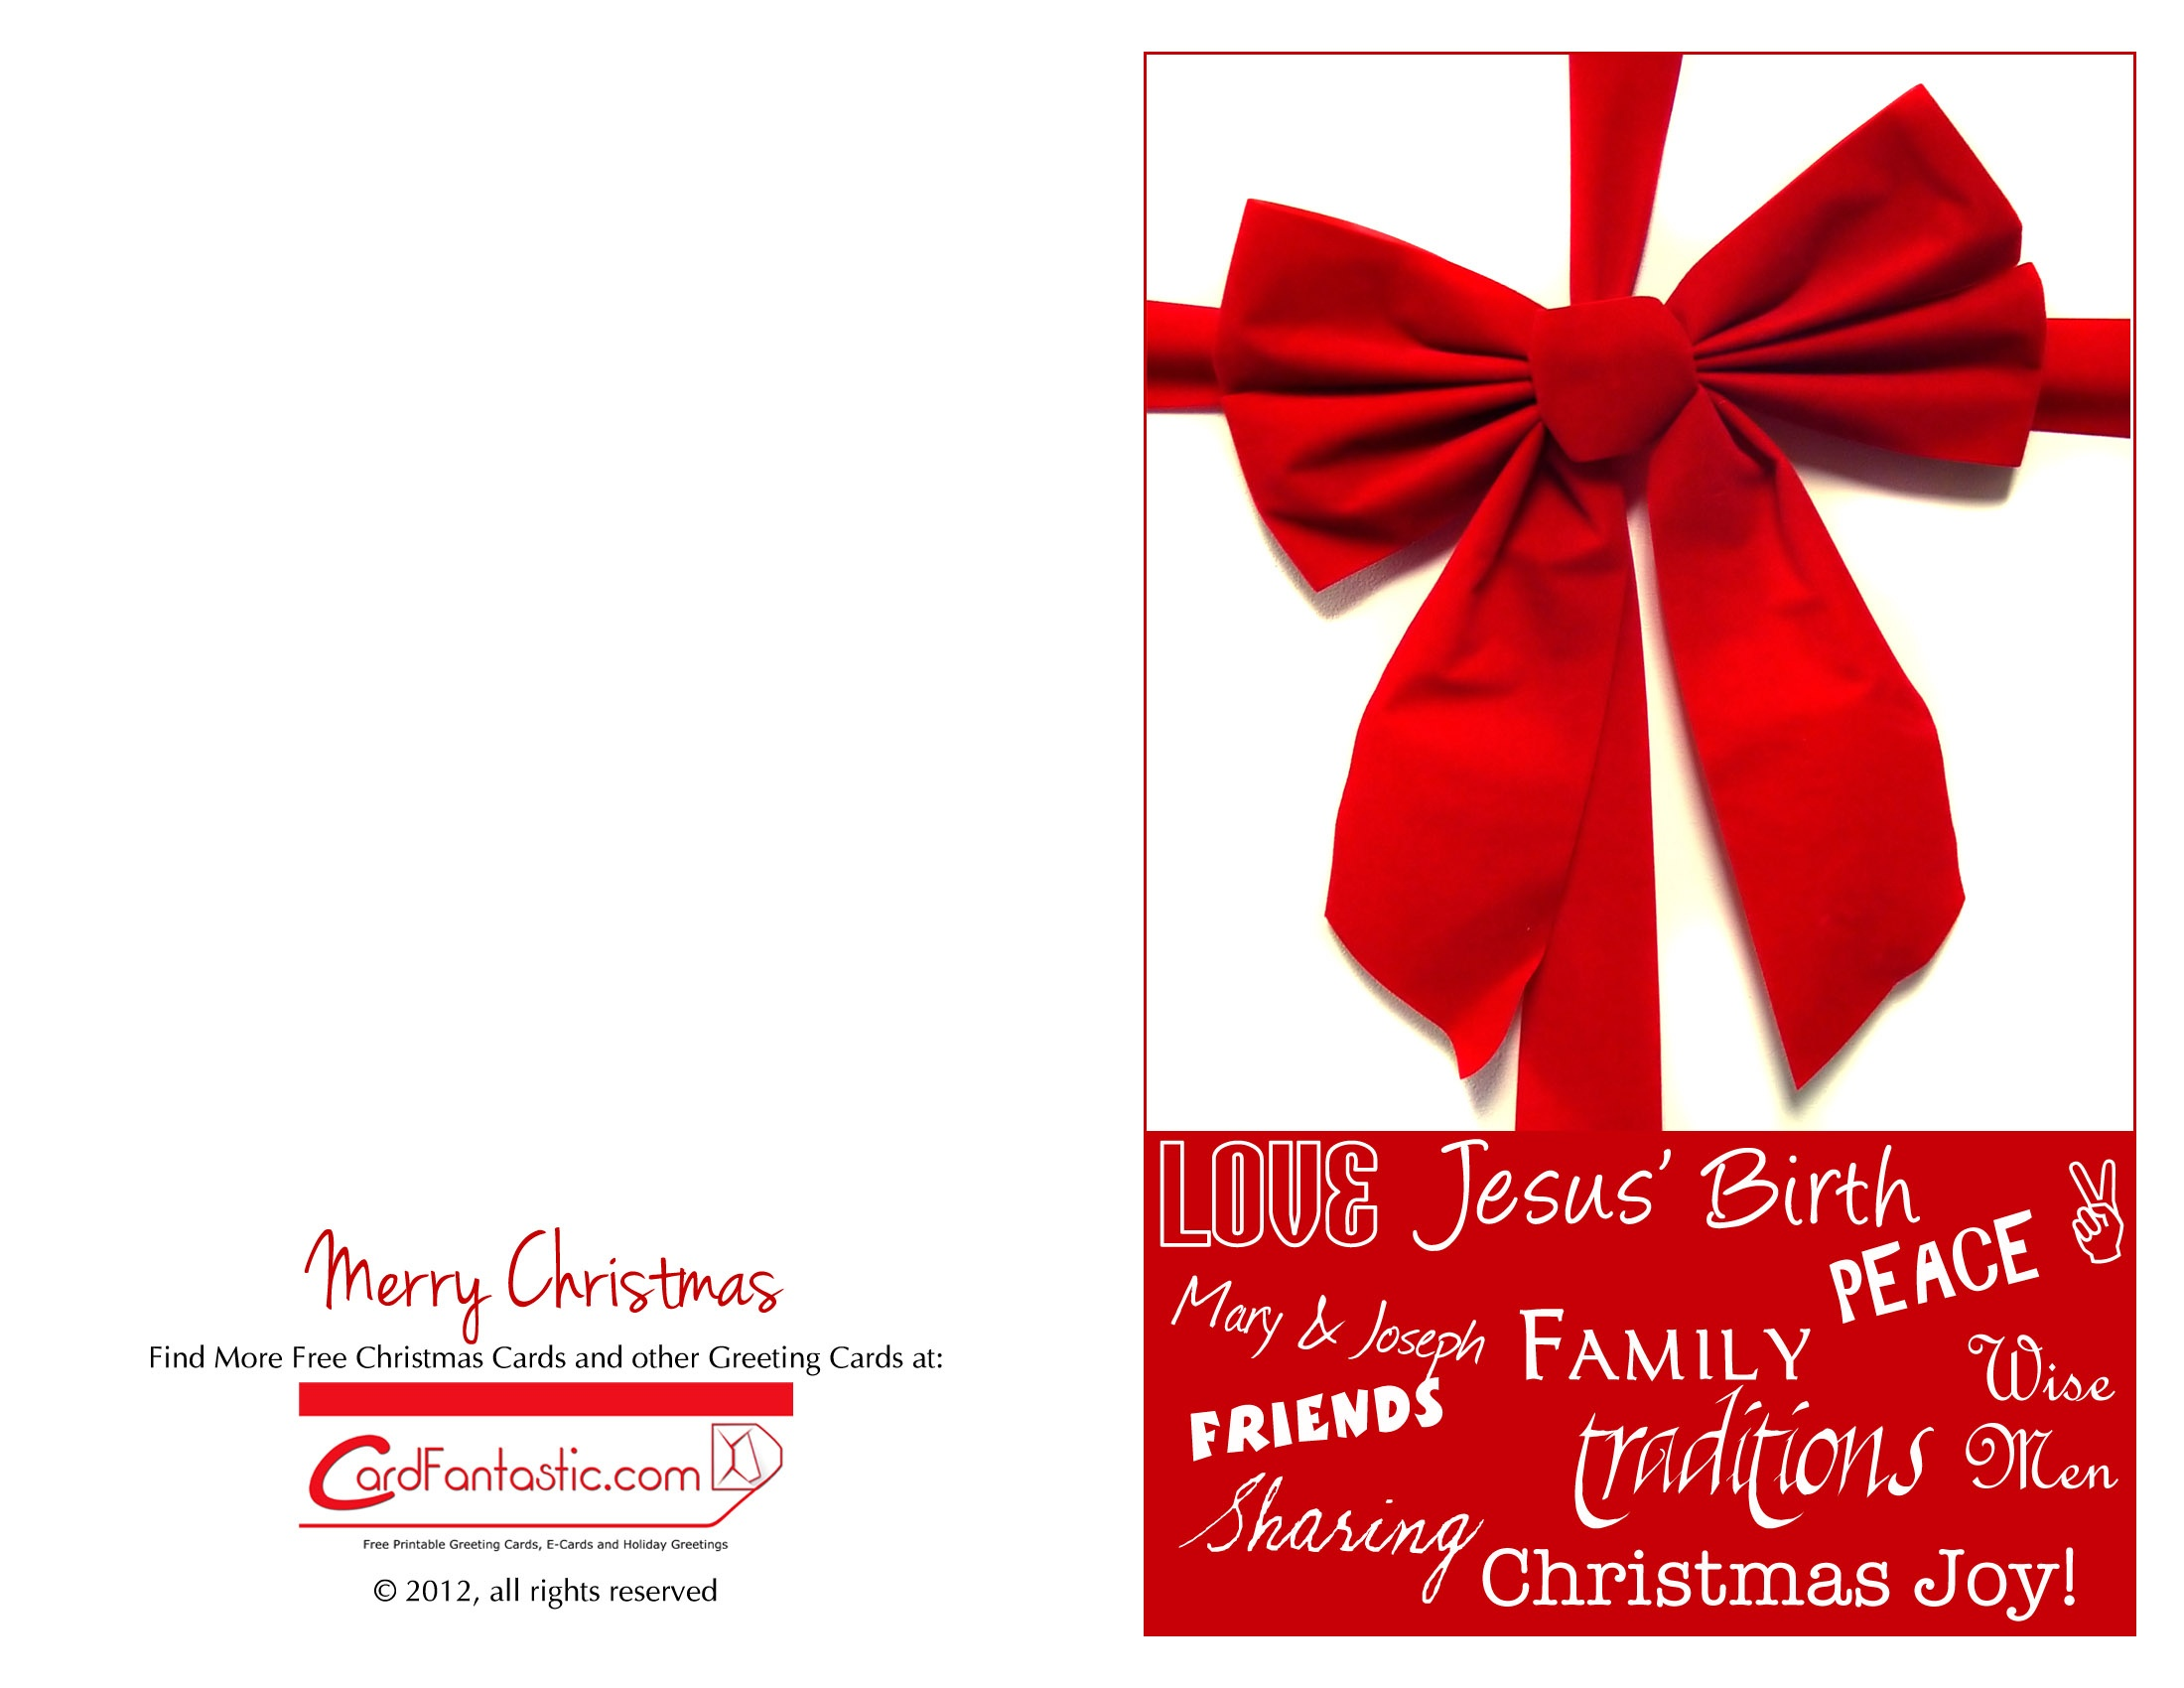 Chirstmas Cards - Download Free Greeting Cards And E-Cards - Christmas Cards Download Free Printable